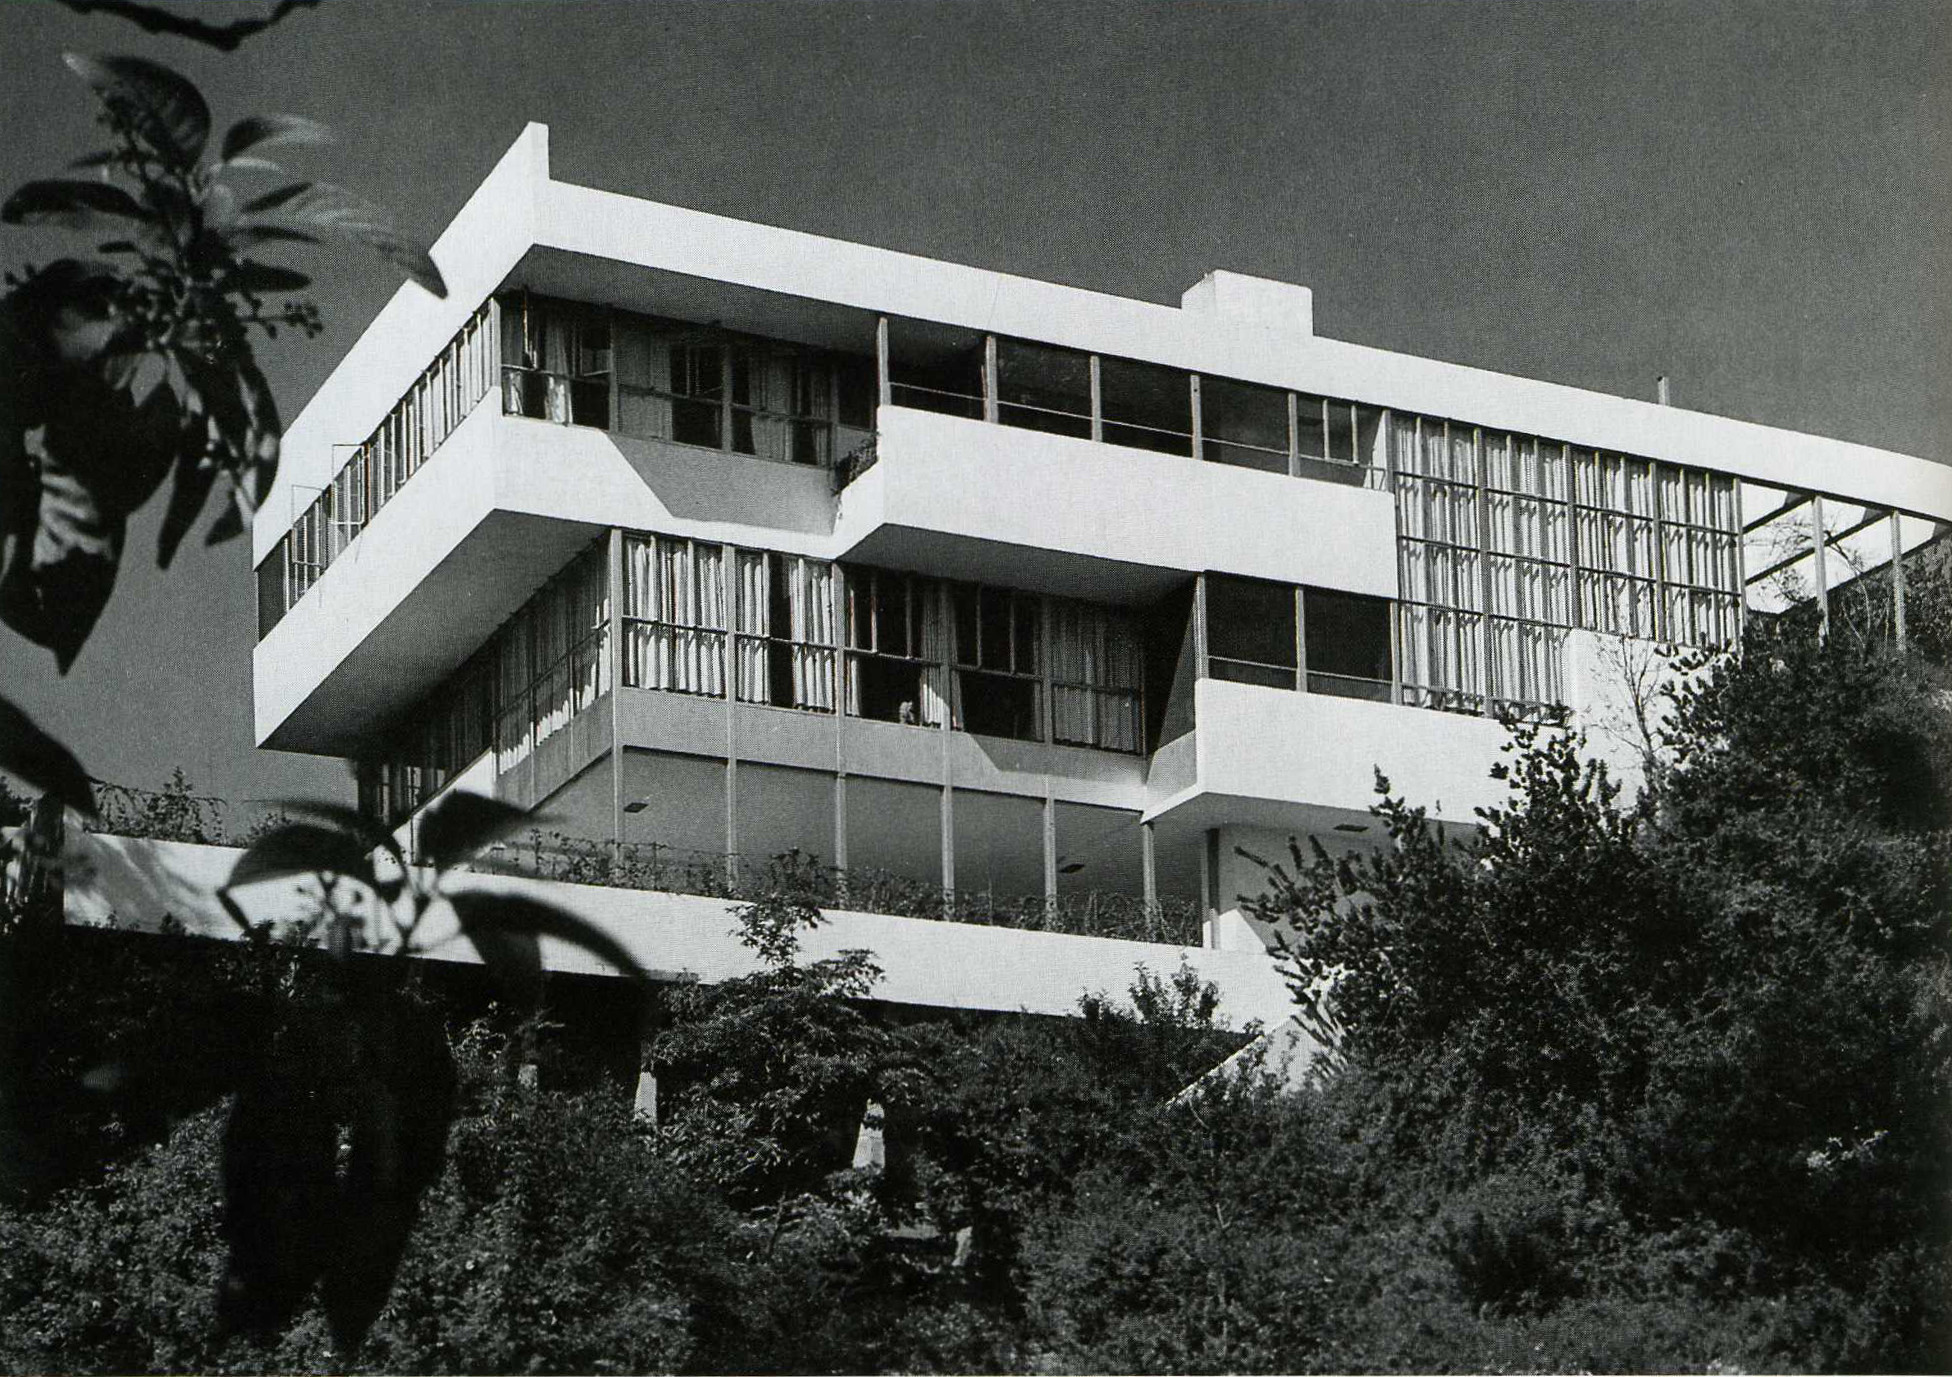 Richard Neutra's 1929 Lovell House. Image Courtesy of Wikiarquitectura